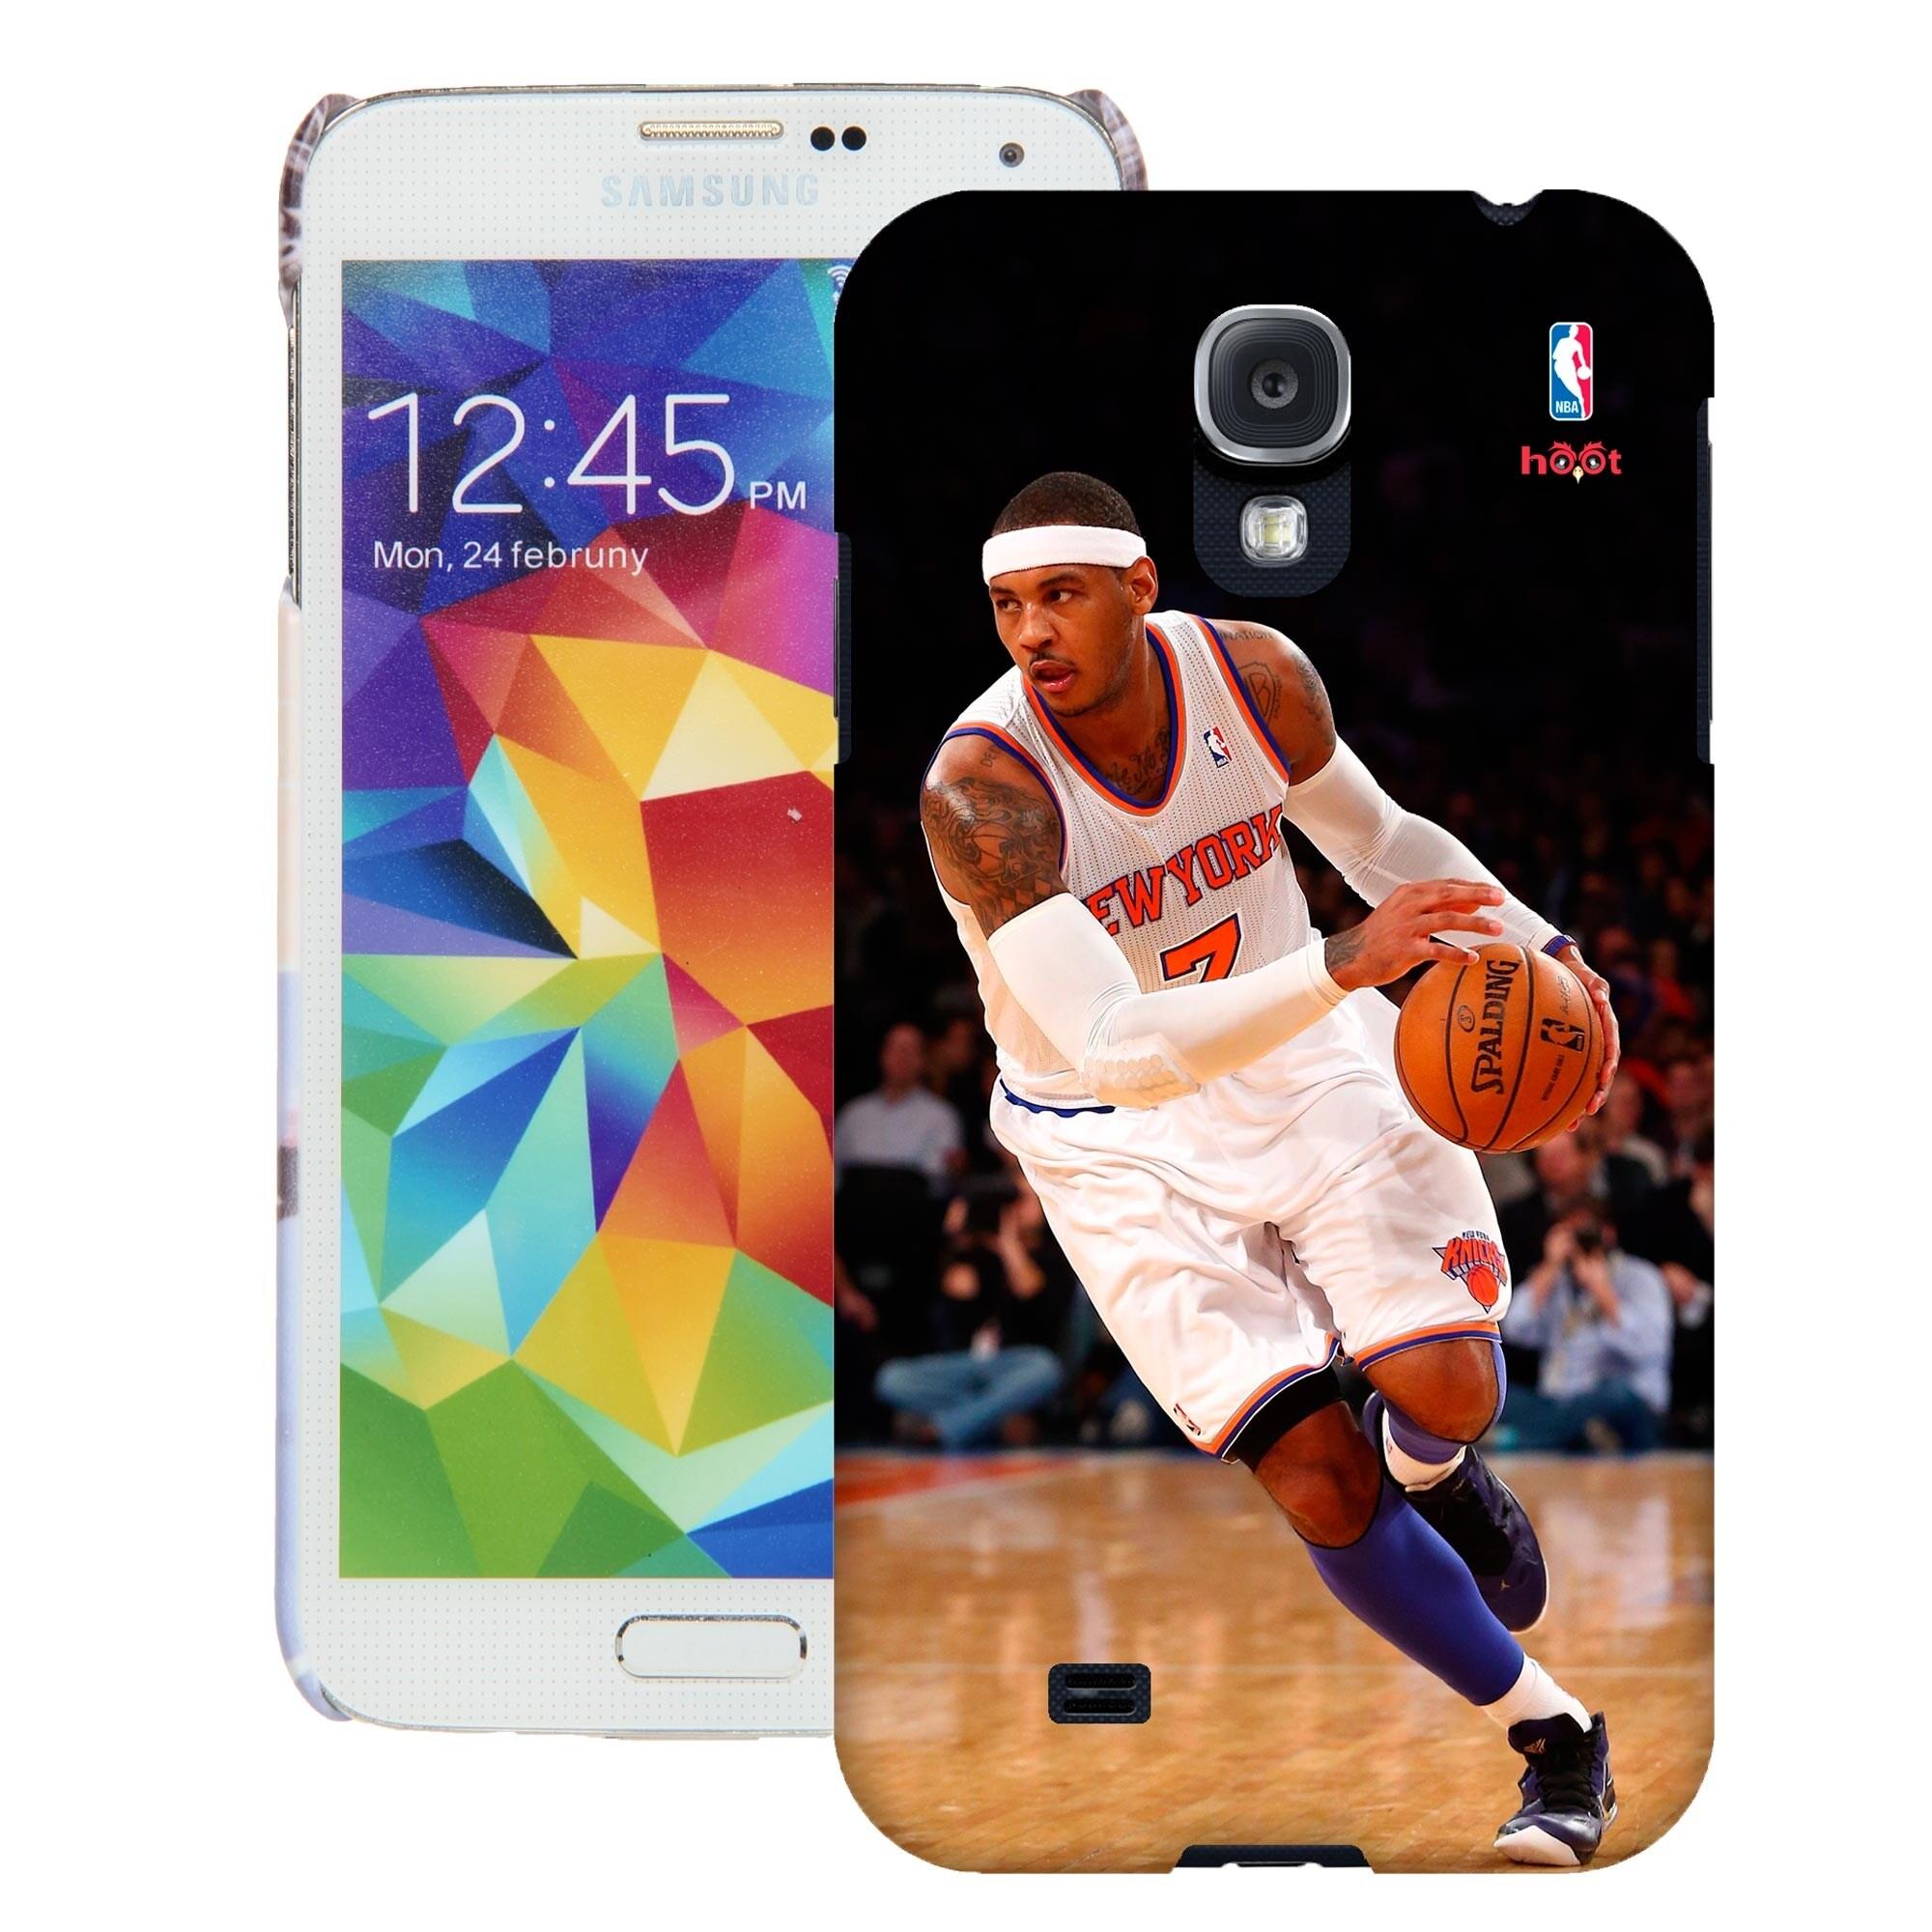 Carmelo Anthony New York Knicks Galaxy S5 Player Case